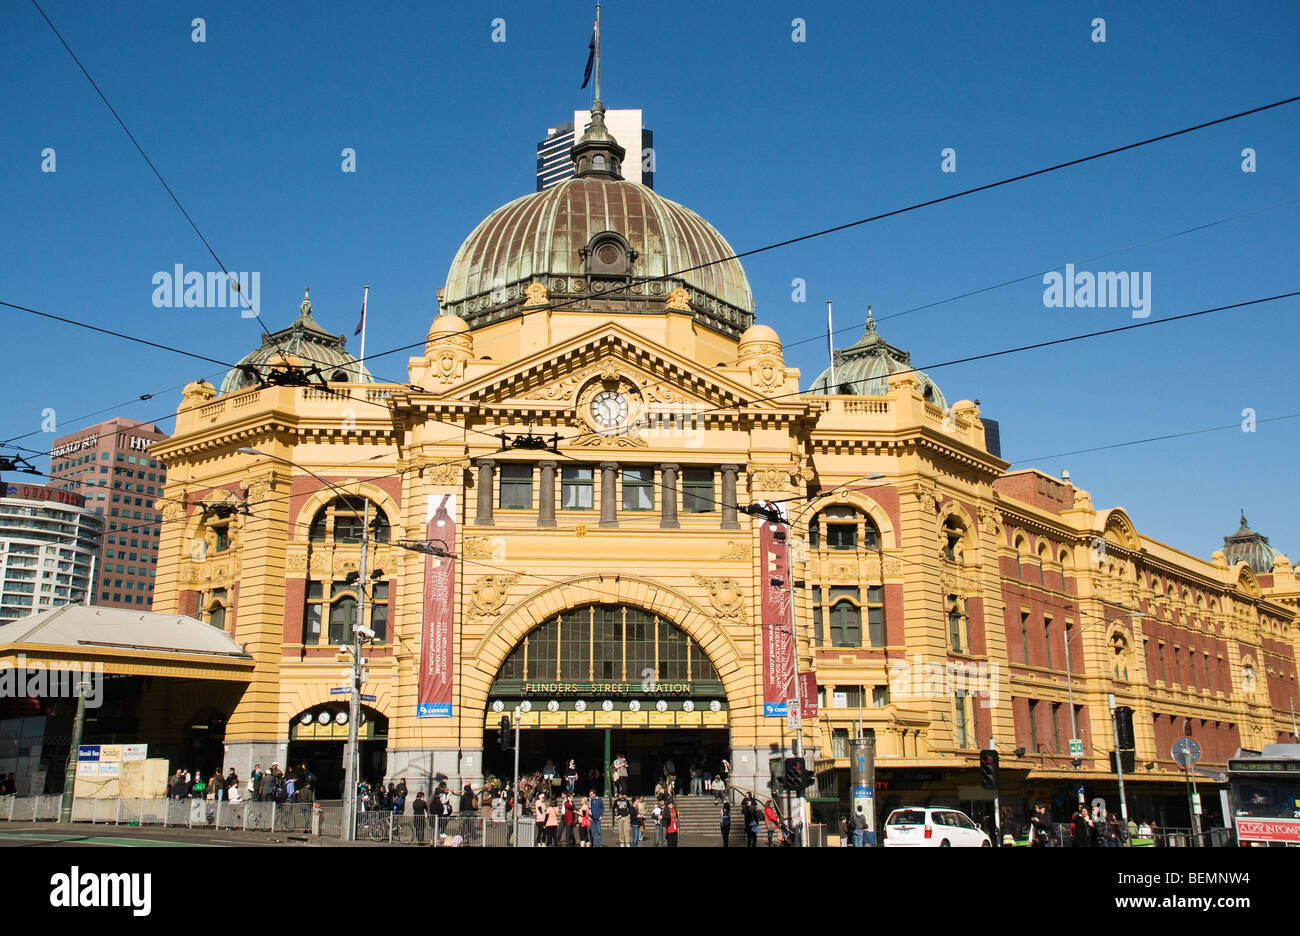 flinders street station melbourne stock photos flinders street